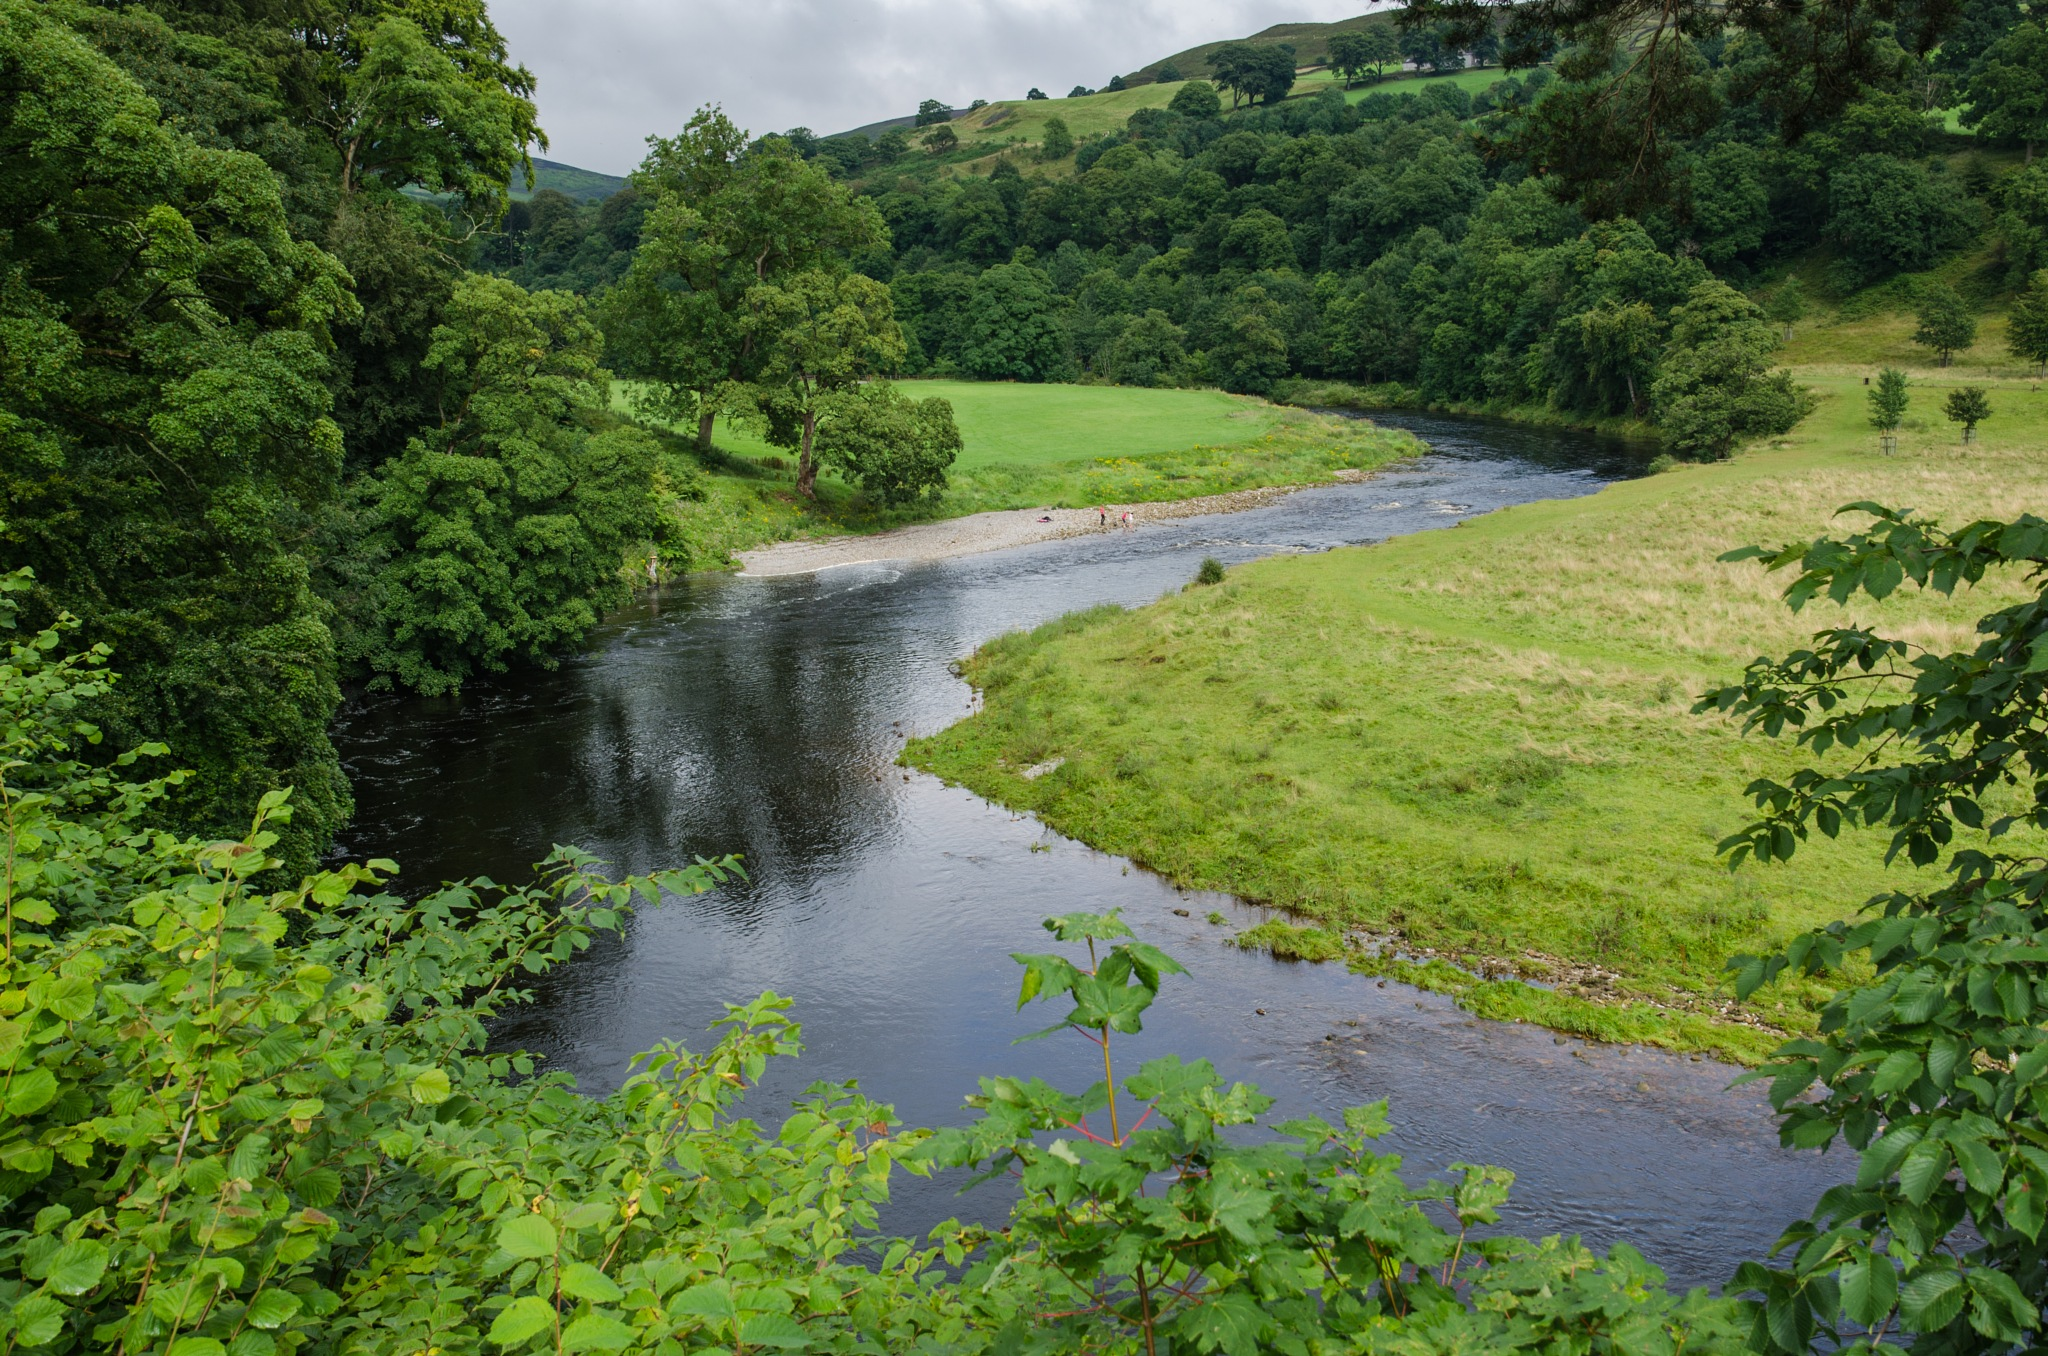 River Wharfe at Bolton Abbey by bfstubbs